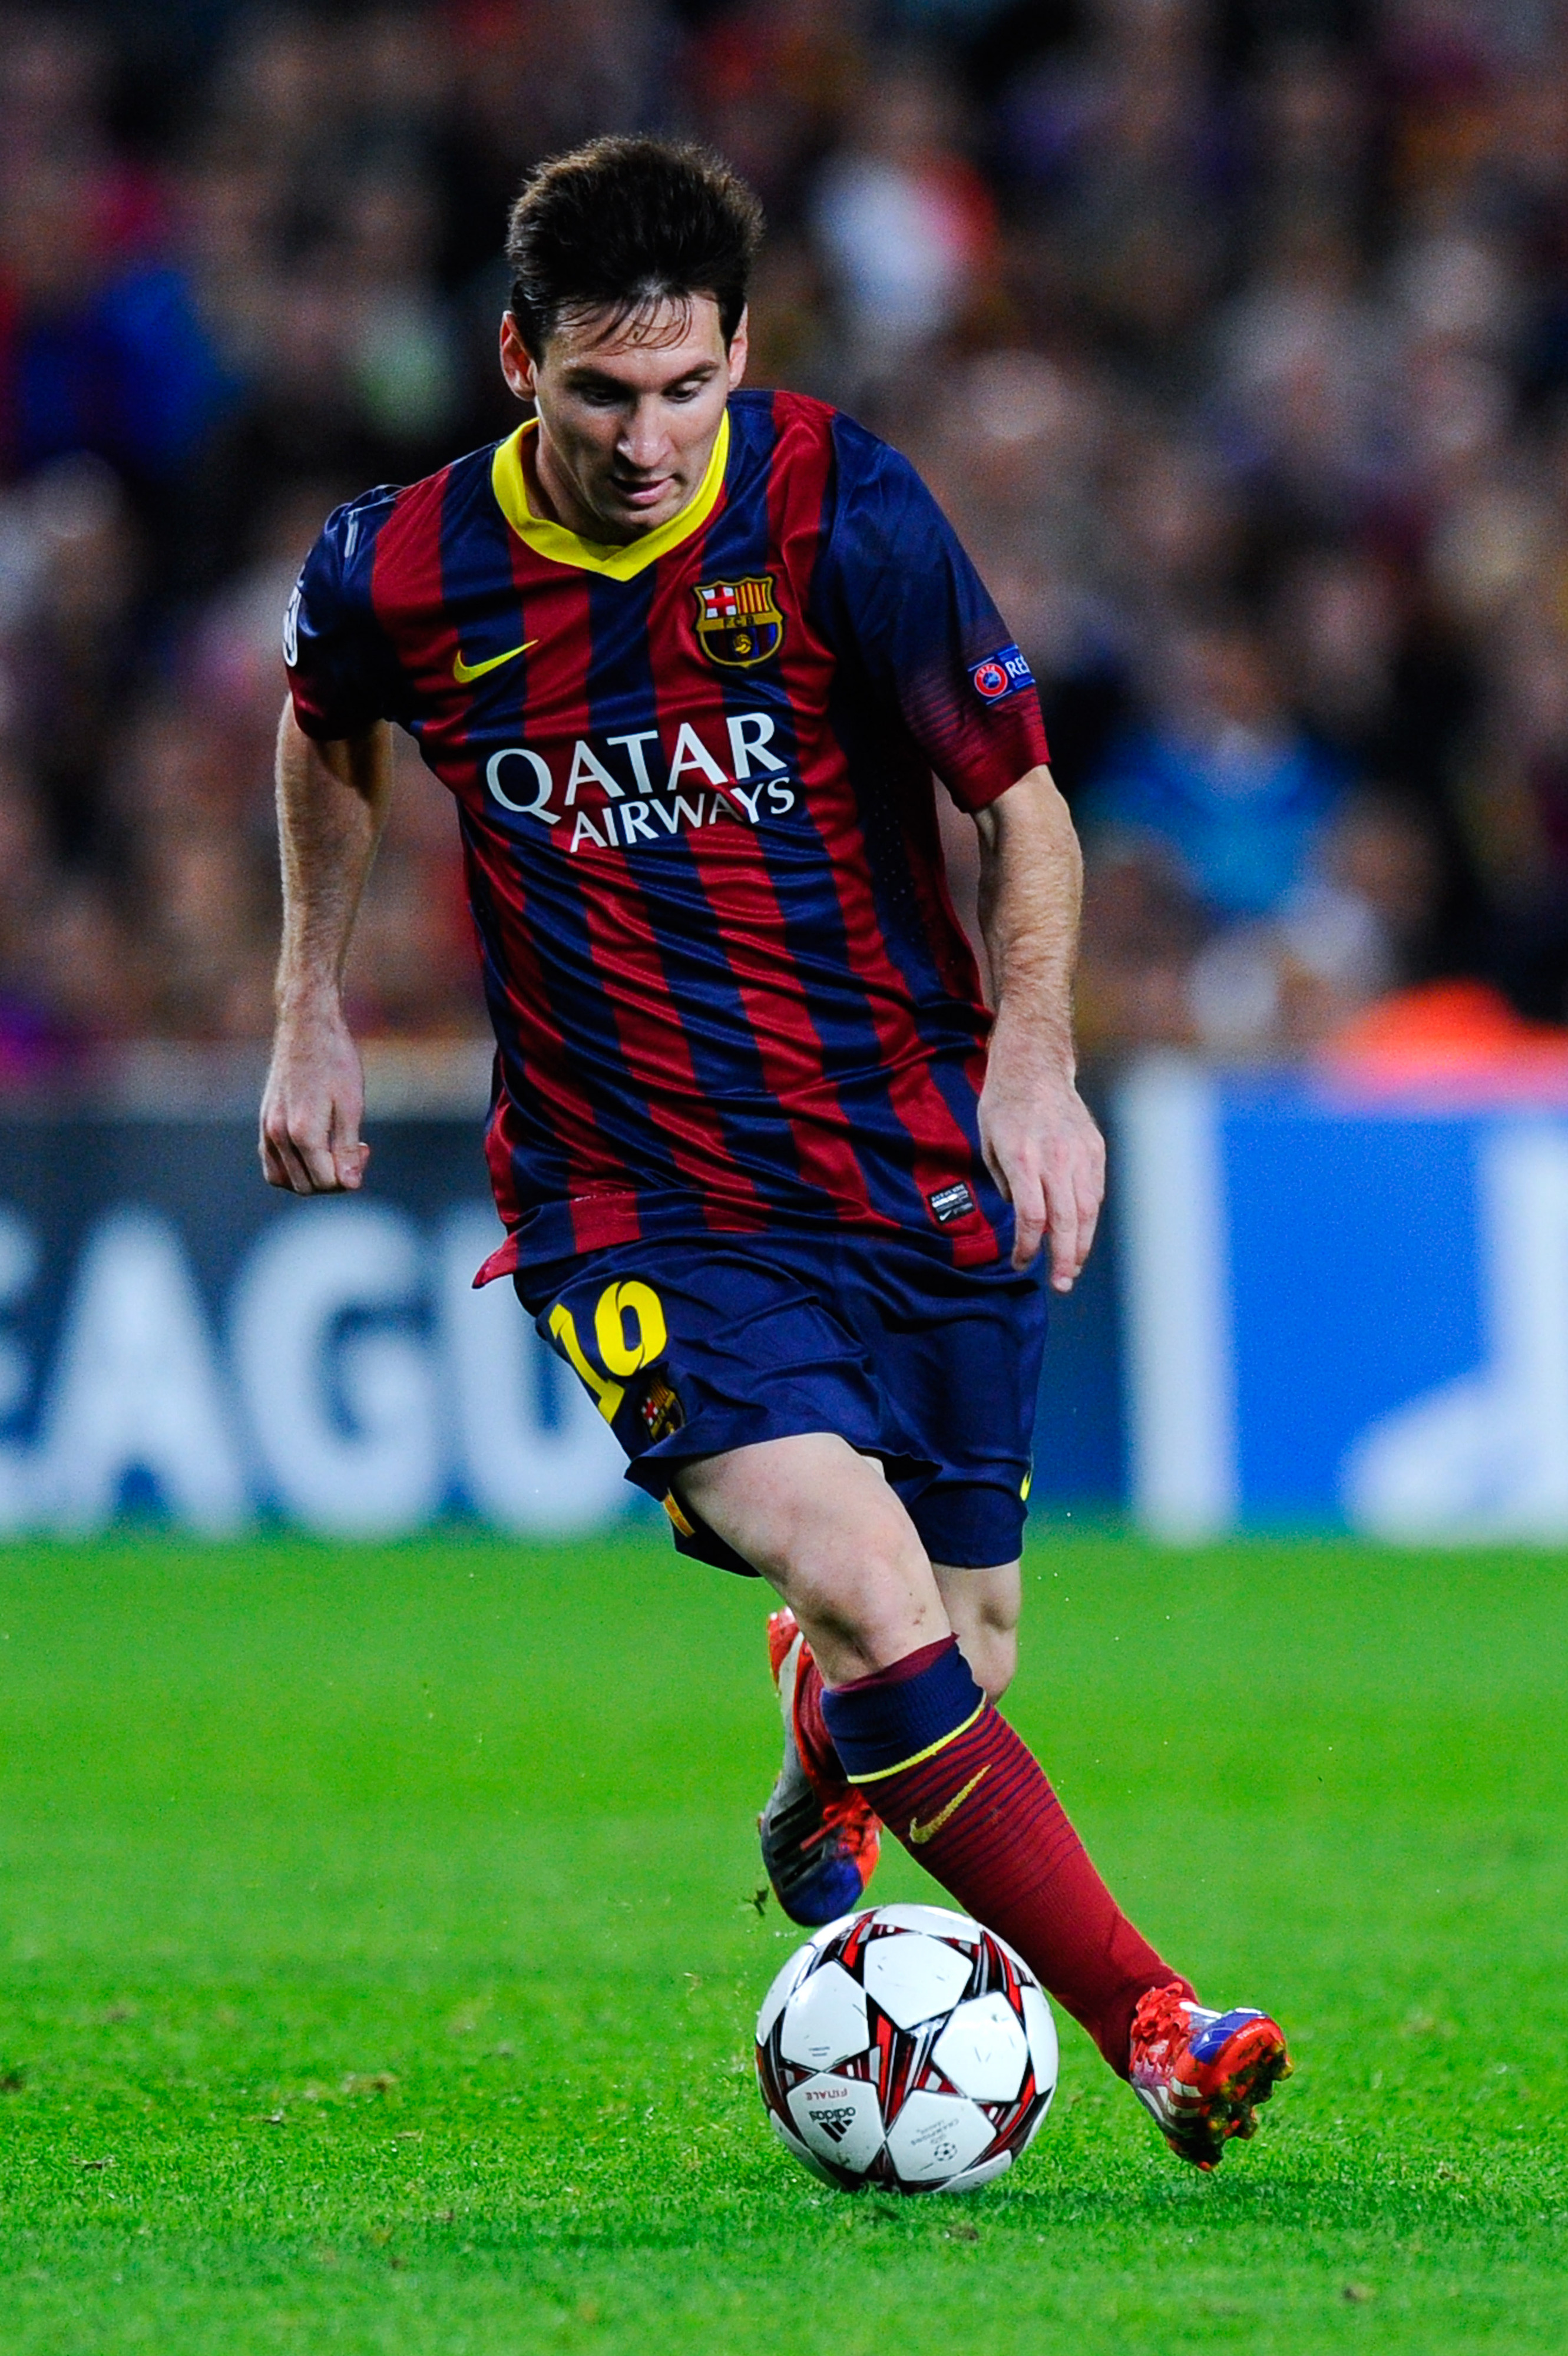 Lionel Messi injury: Barcelona forward substituted against Real Betis